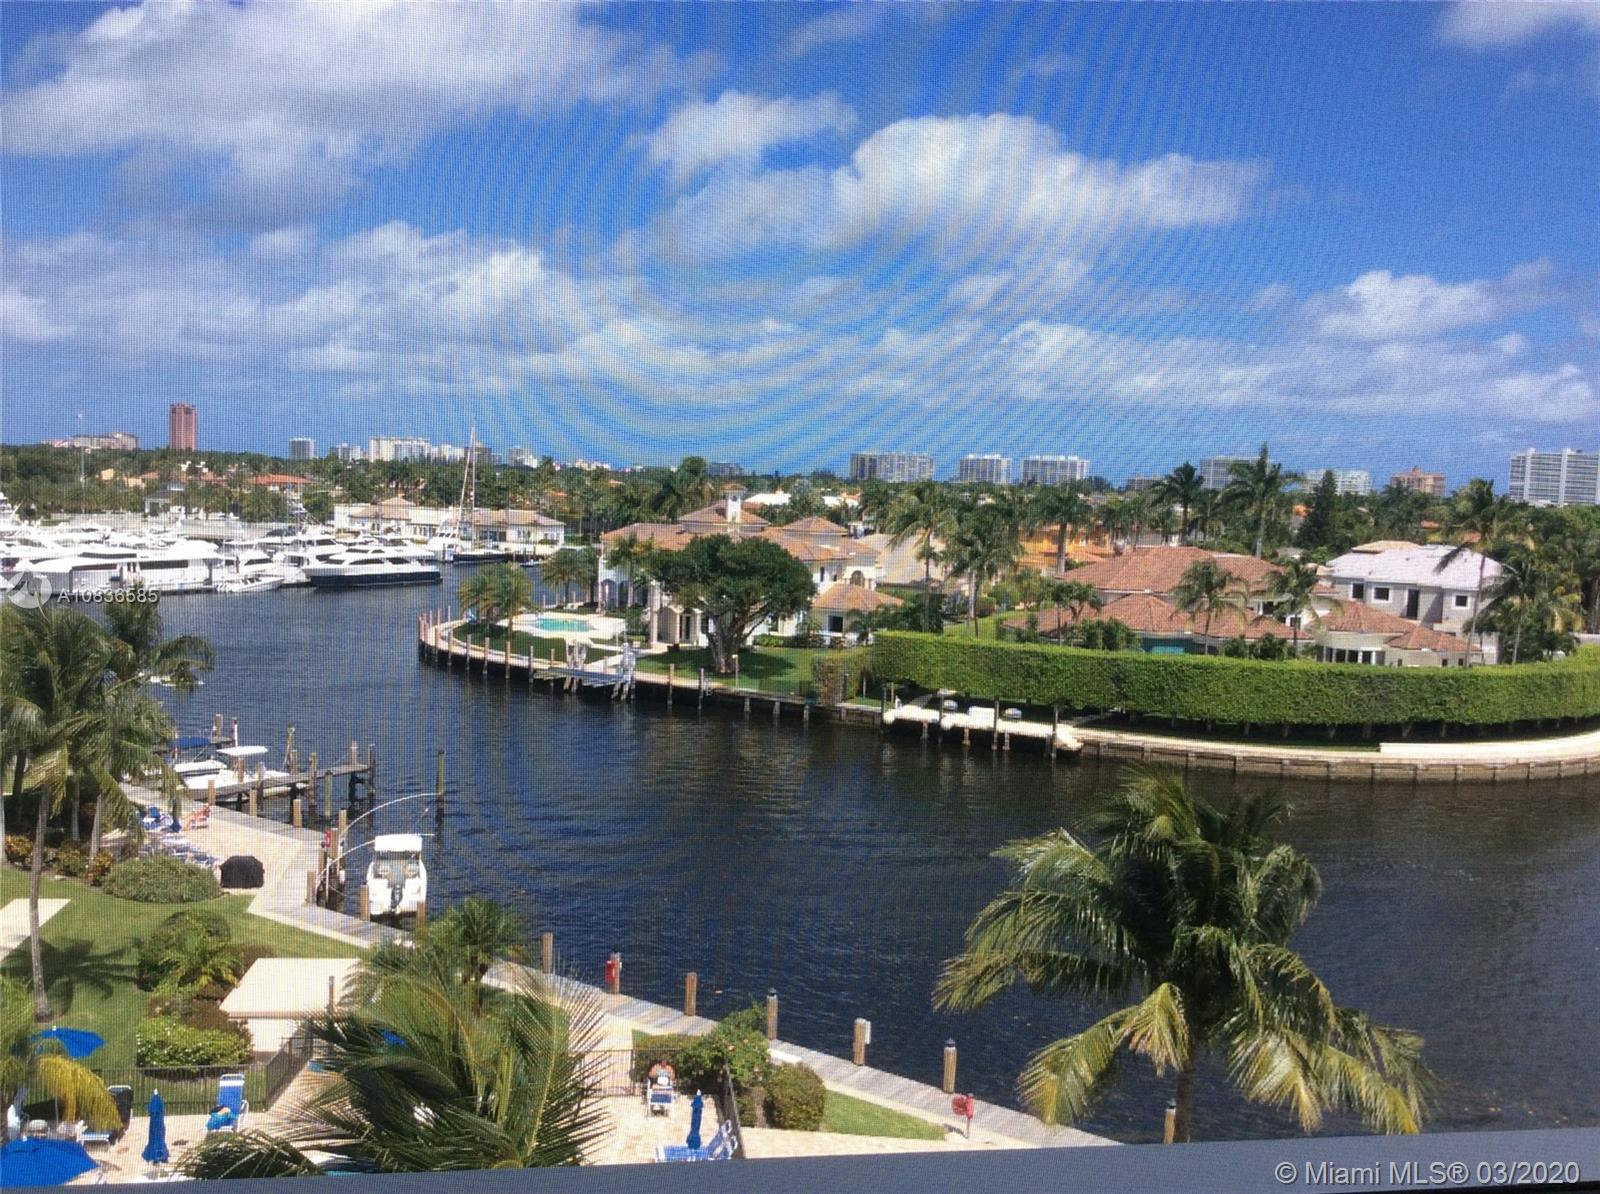 THE MOST SPECTACULAR WATER VIEW AS SOON AS YOU ENTER THE CONDO. COMPLETELY RENOVATED AND UPDATED IN 2018 WITH HIGH END MATERIALS. HARDLY LIVED IN. CUSTOM BUILT KITCHEN, BATHROOMS COMPLETELY RENOVATED WITH WITH BEAUTIFUL TILES, HURRICANE IMPACT WINDOWS, DOORS AND SLIDING DOORS THRUOUT, HURRICANE IMPACT ELECTRIC SHUTTERS ON THE BALCONY, ISLAND WITH WATERFALL GRANITE, STAINLESS STEEL APPL. BEAUTIFULLY FURNISHED AND DECORATED BY PROFESSIONAL DESIGNER, ALL ITALIAN CERAMIC FLOORING, NEW WATER HEATER, ELECTRONIC WI/FI THERMOSTAT. OVERSIZE SCREENED BALCONY.  NO EXPENSE WAS SPARED, THIS IS TRULY ONE OF A KIND. BOAT DOCKAGE AVAILABLE. BLDG. JUST PASSED IT'S 40 YR. CERTIFICATION AND SPECIAL ASSESSMENT HAS ALREADY BEEN PAID.  BEST KEPT SECRET IN DEERFIELD BEACH, CLOSE TO BEACH, RESTAURANTS, SHOPPING.